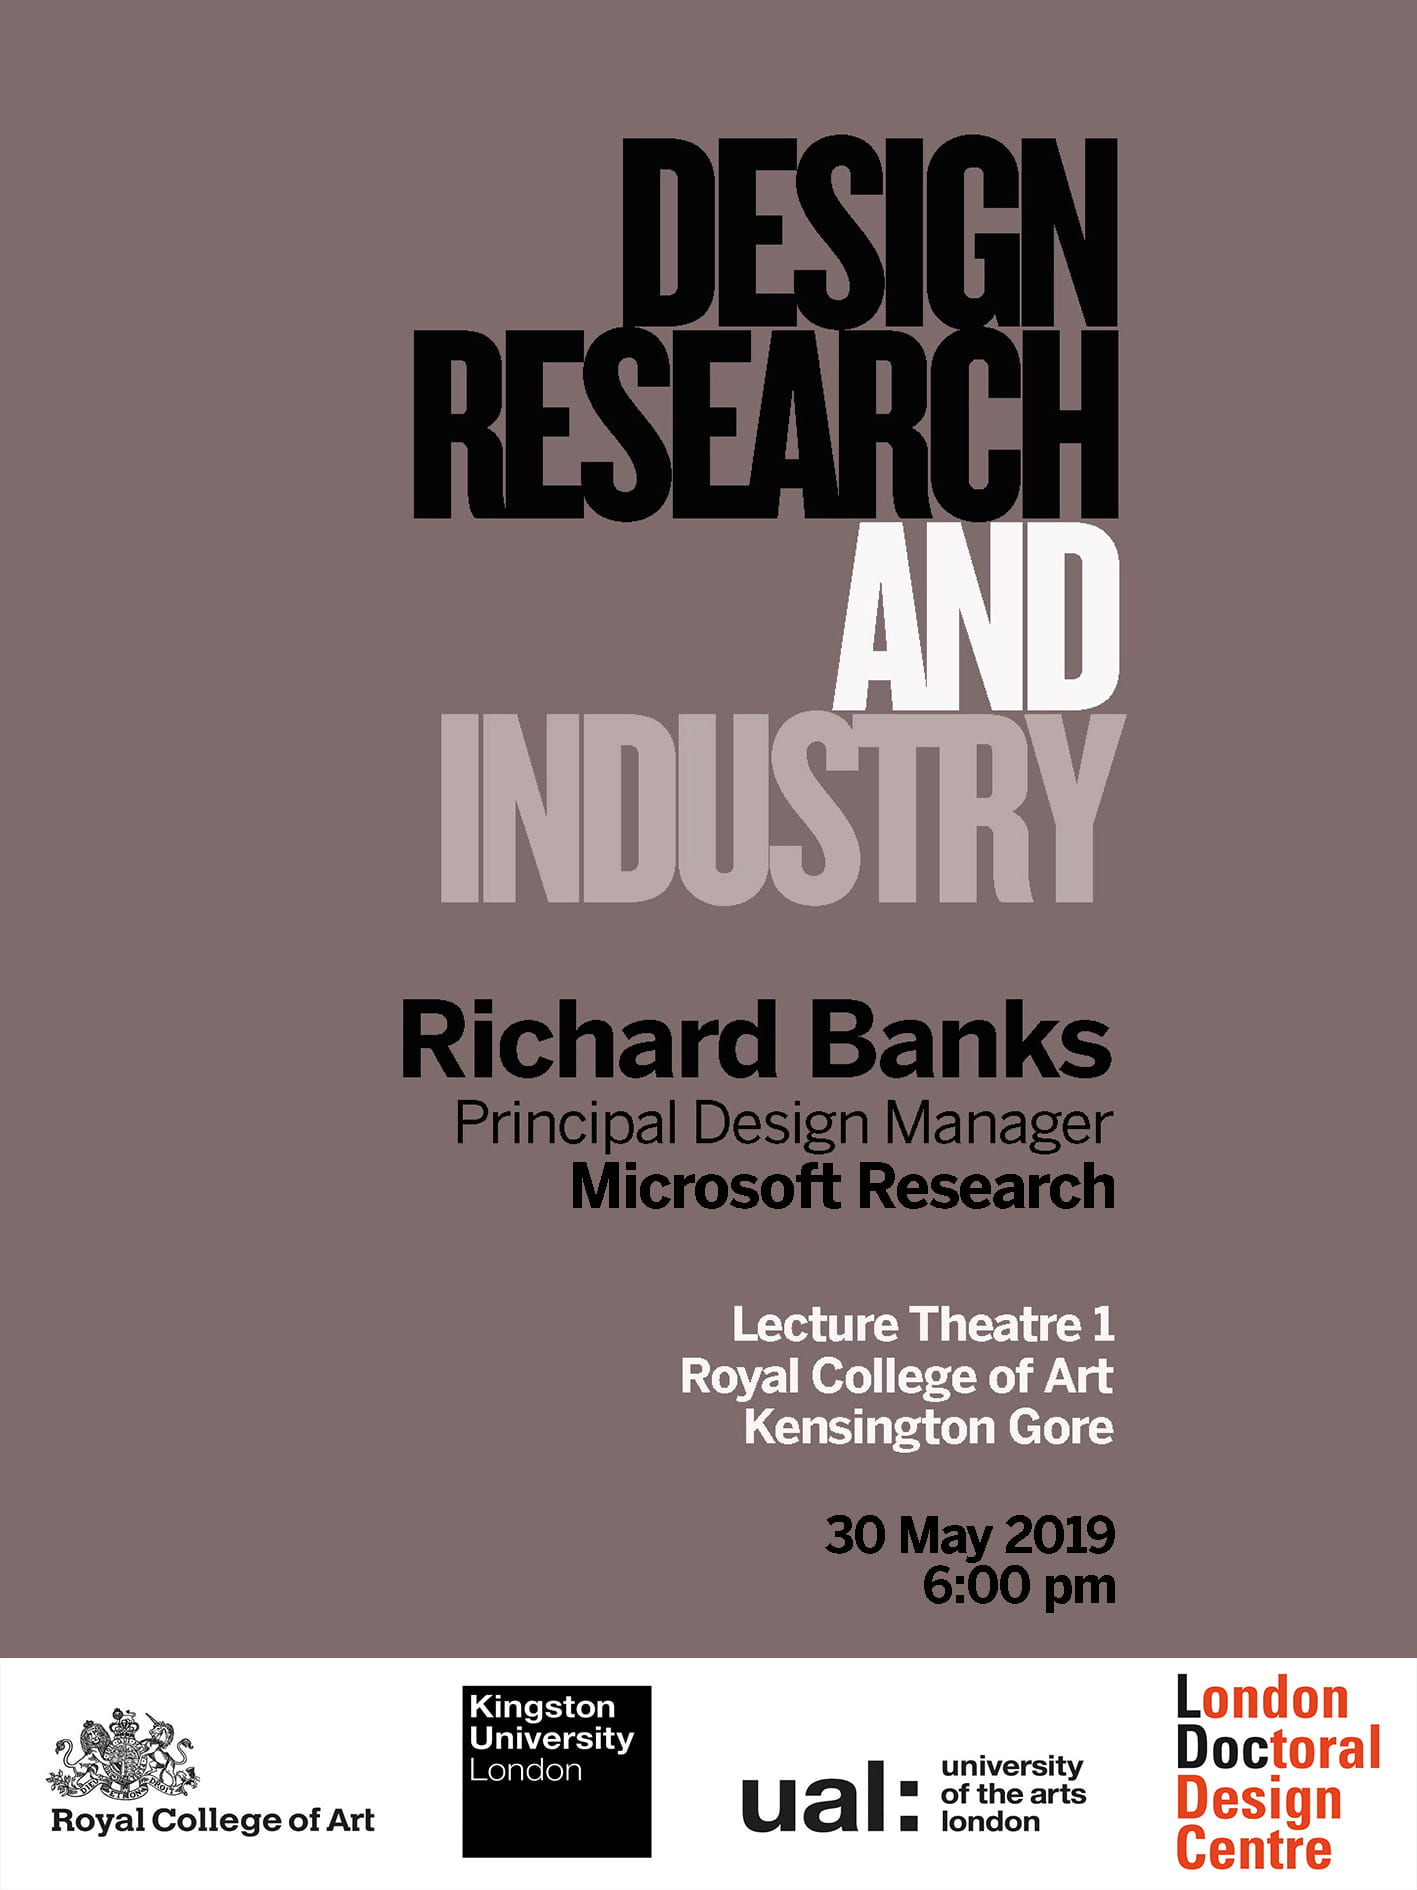 Design Research and Industry